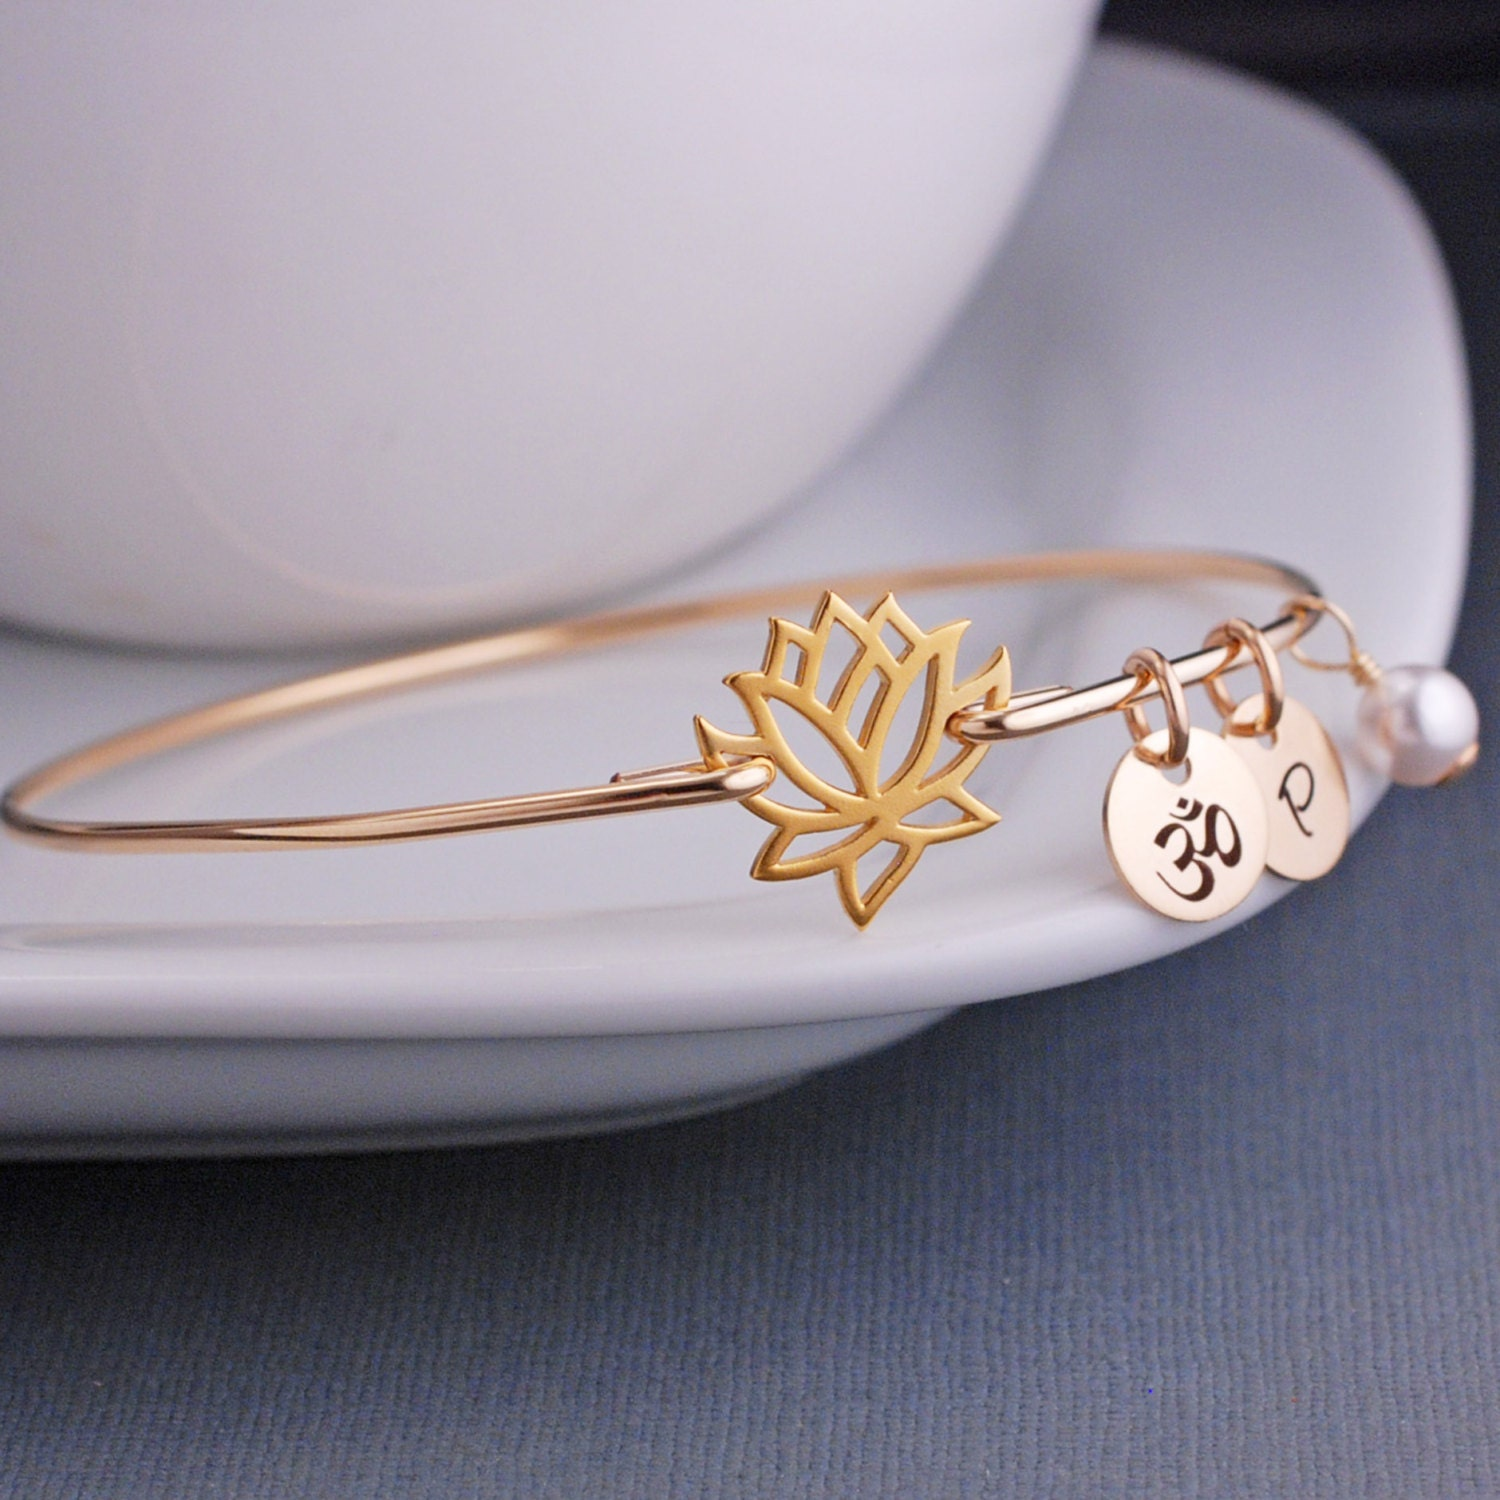 bangle girl bangles girls charm emoji tone bracelets gold bracelet